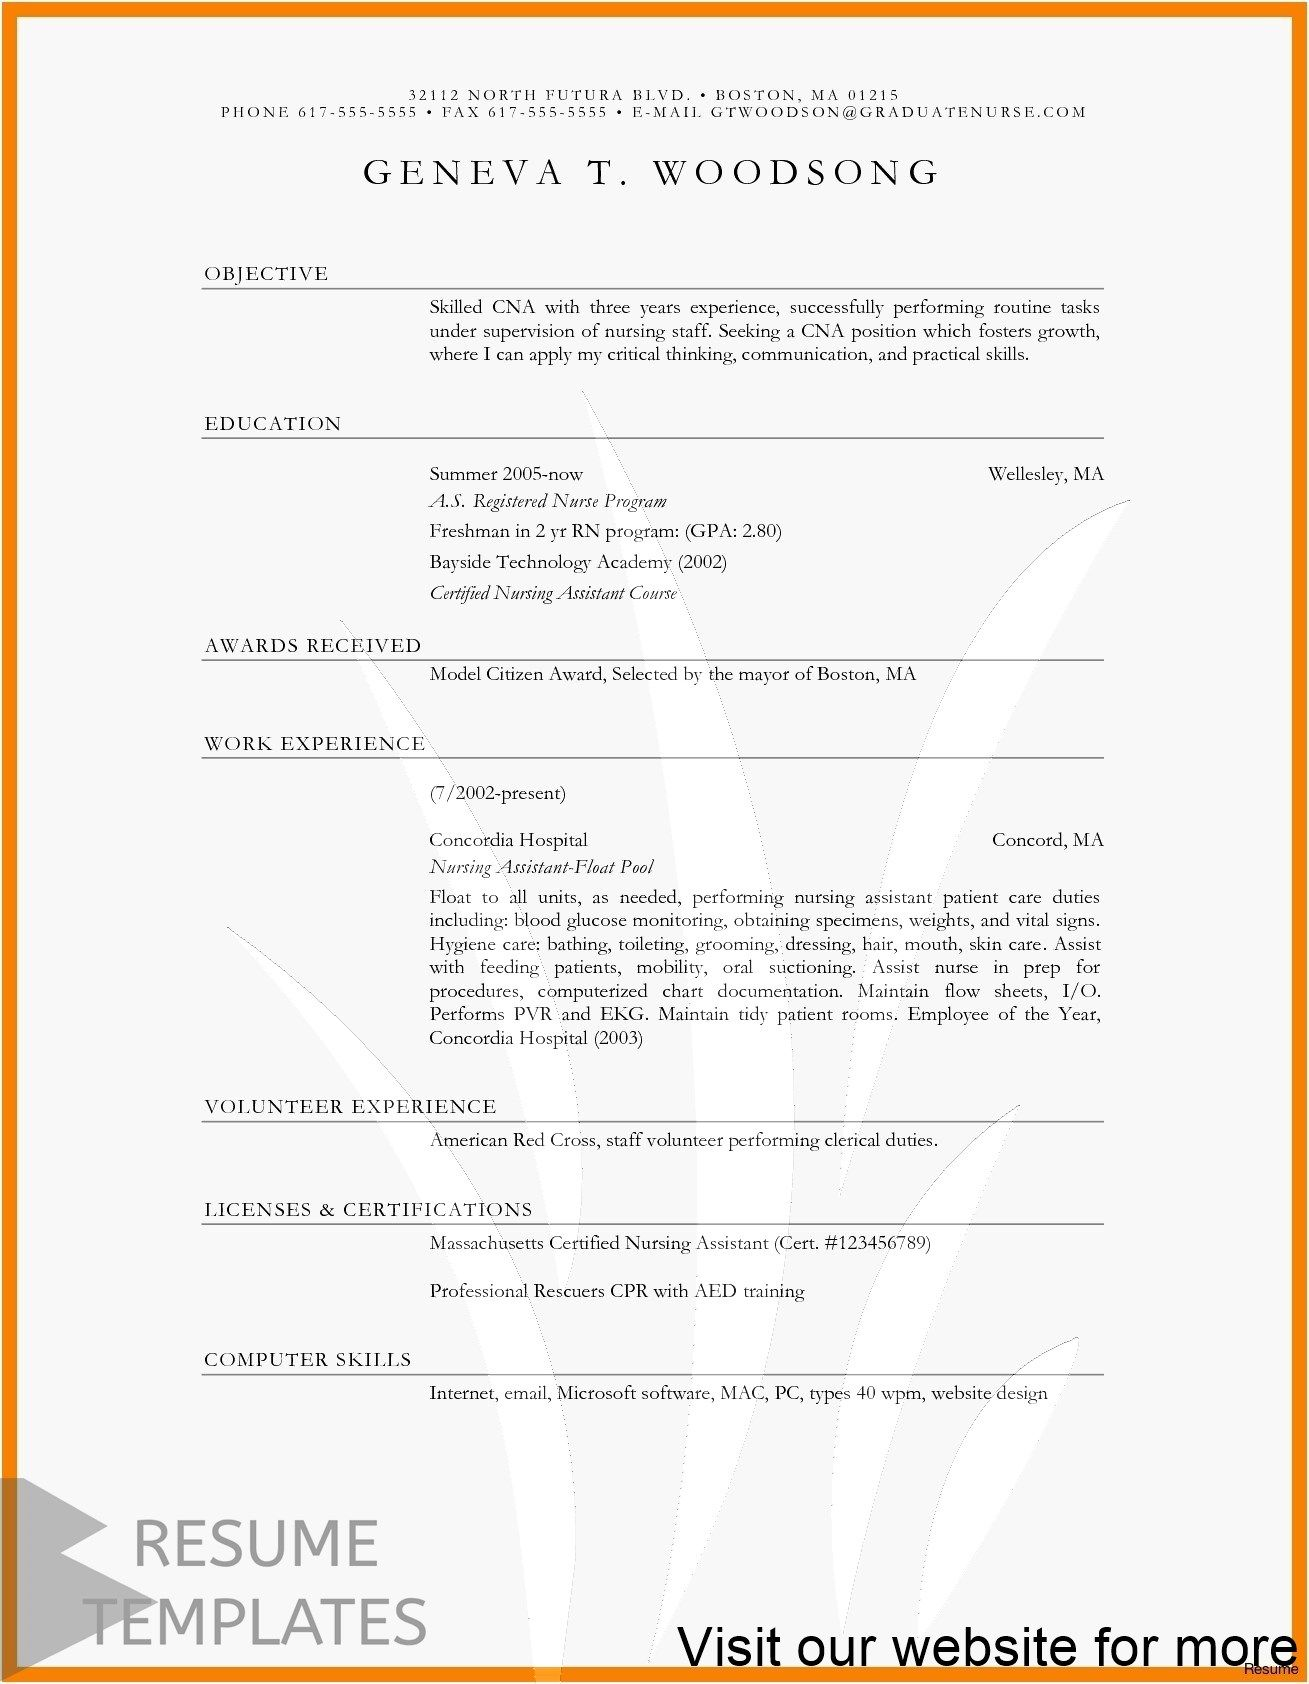 college student resume builder 2020 in 2020 Resume